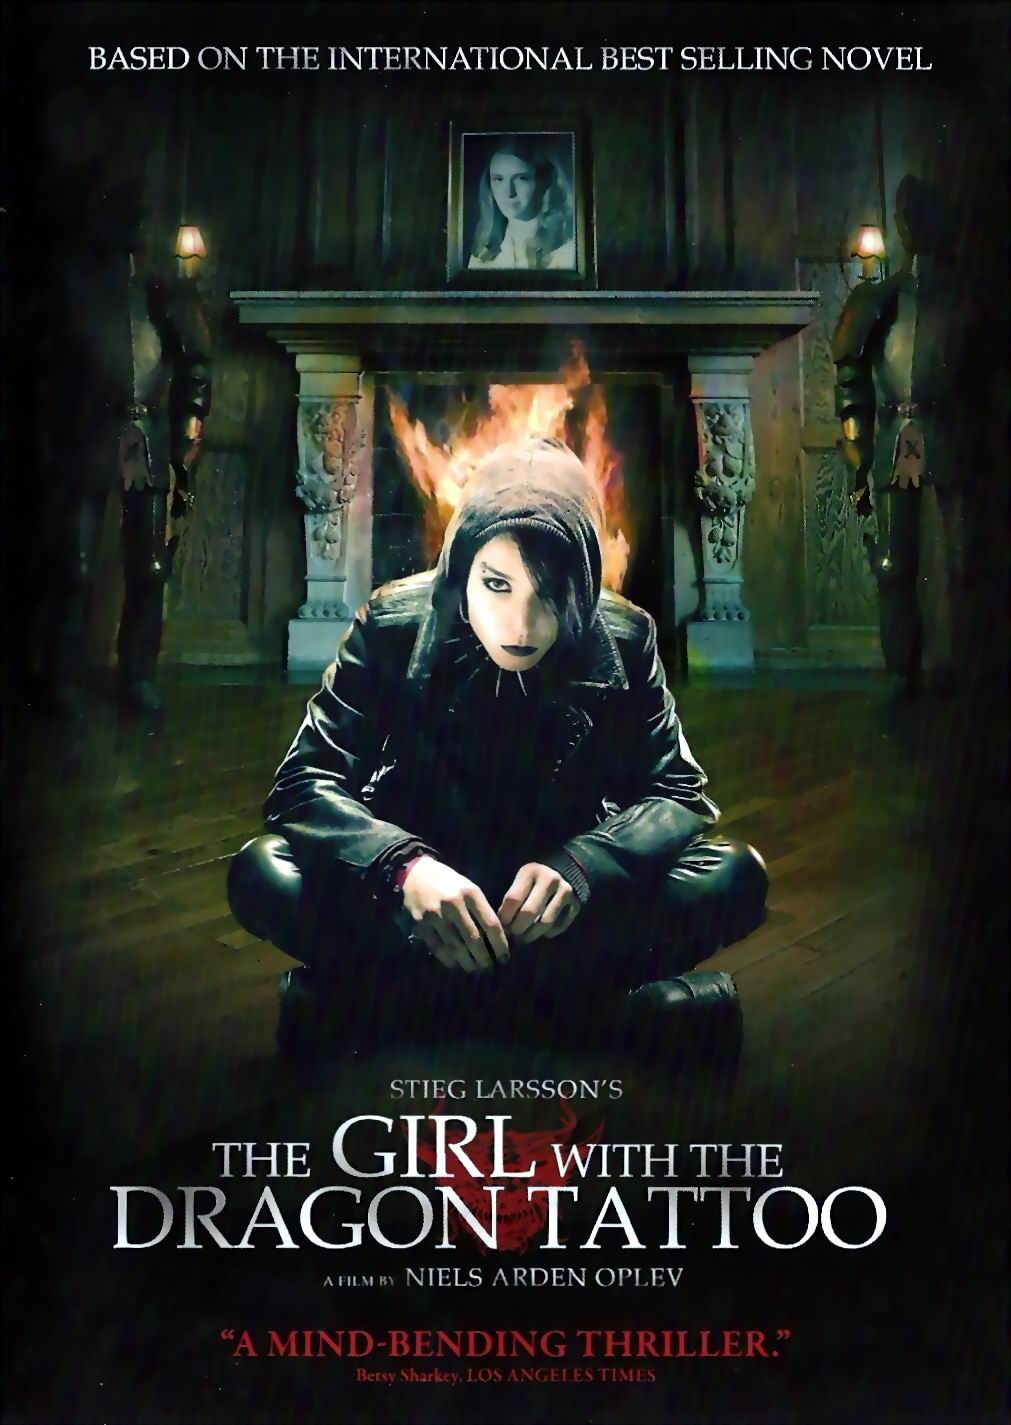 Latest movies july 06 2010 for The girl with the dragon tattoo movies